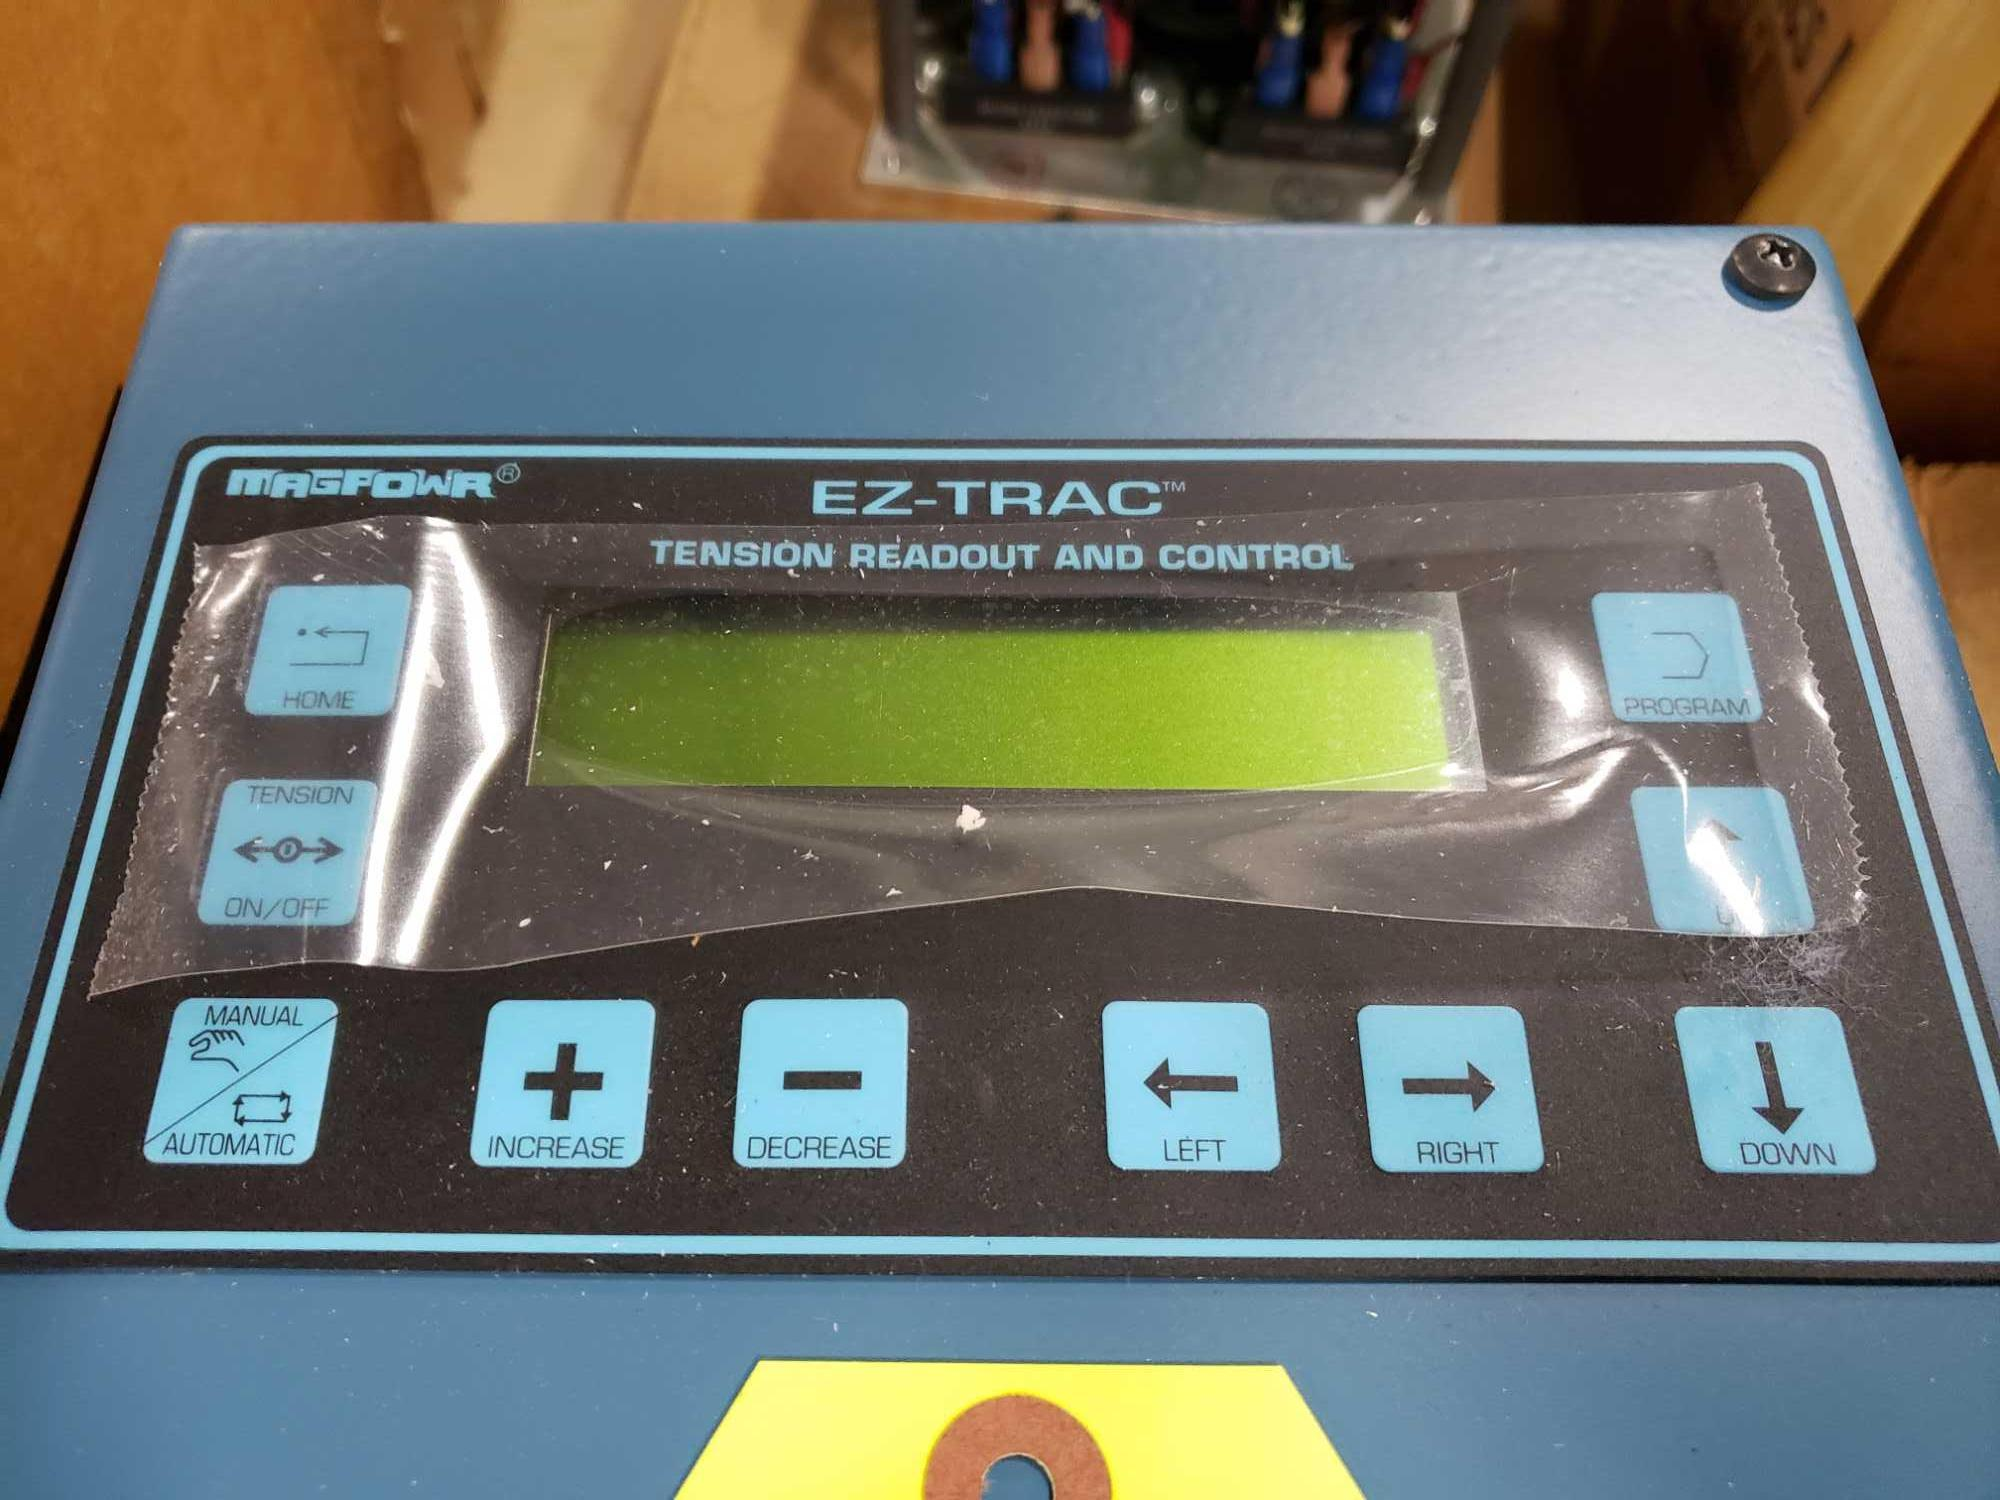 Magpowr EZ-Trac model EZE controller. New in box. - Image 2 of 5